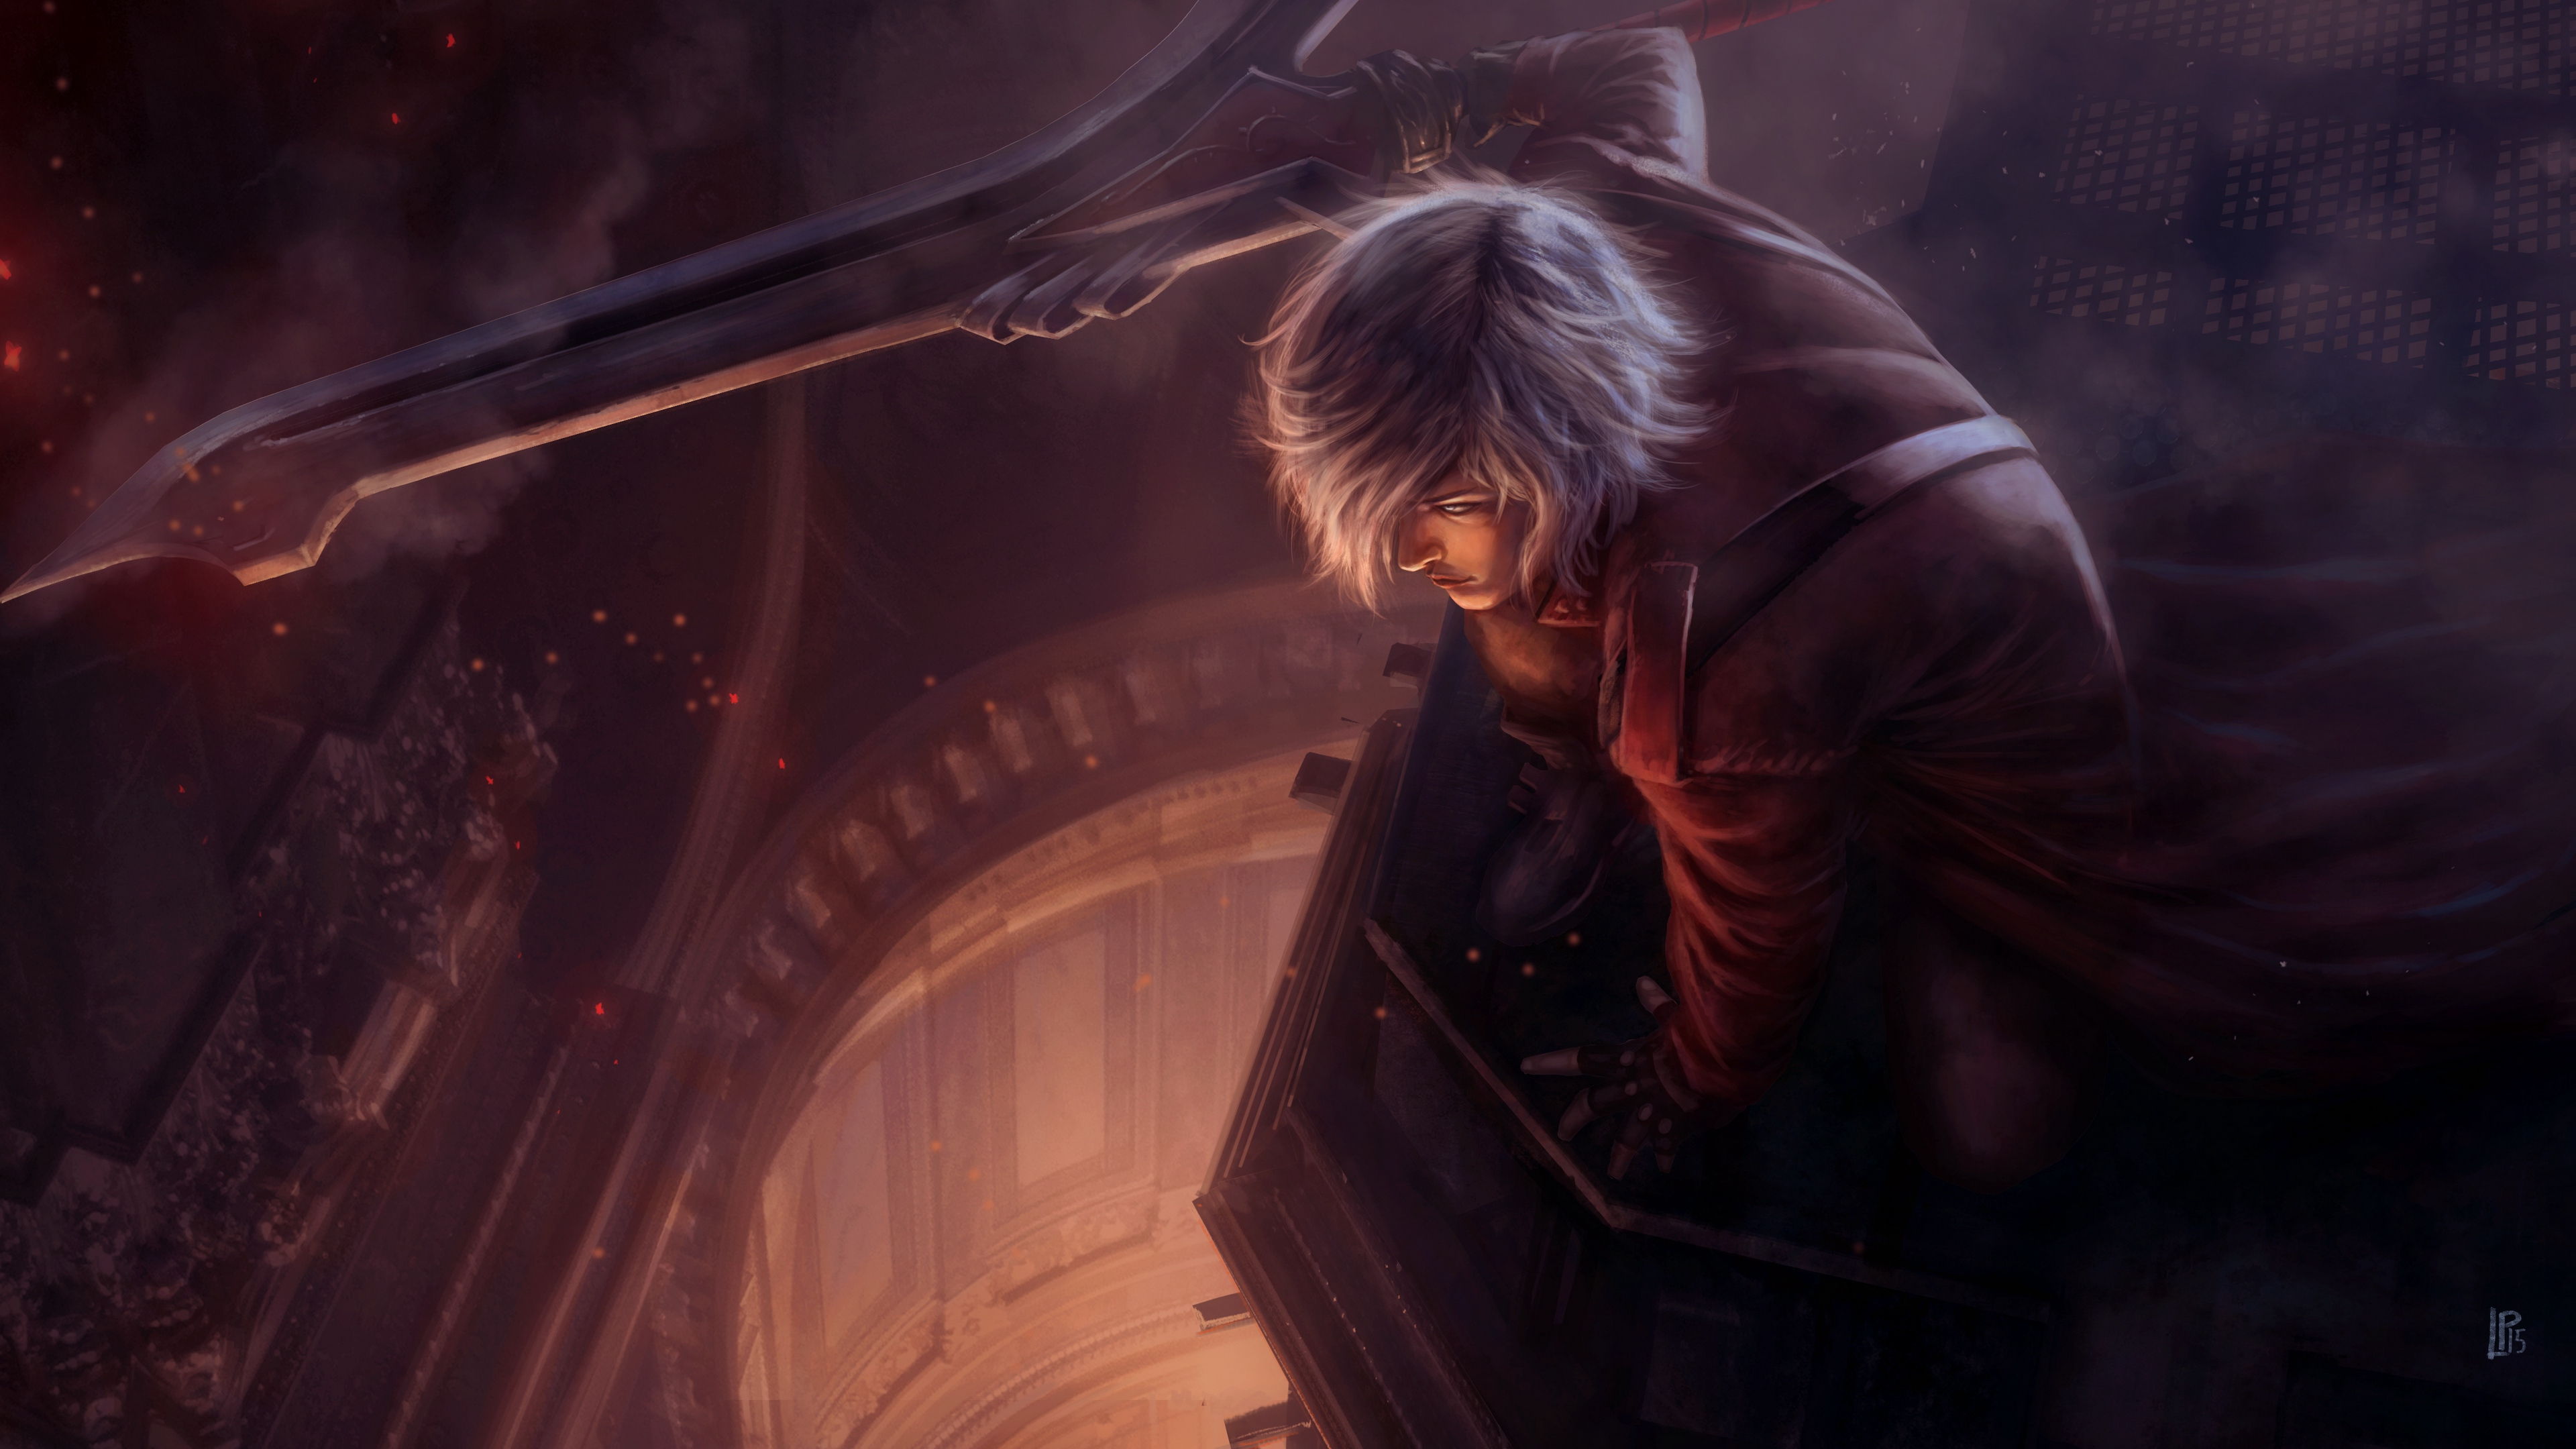 devil may cry dante art character 4k 1538944953 - devil may cry, dante, art, character 4k - devil may cry, Dante, art